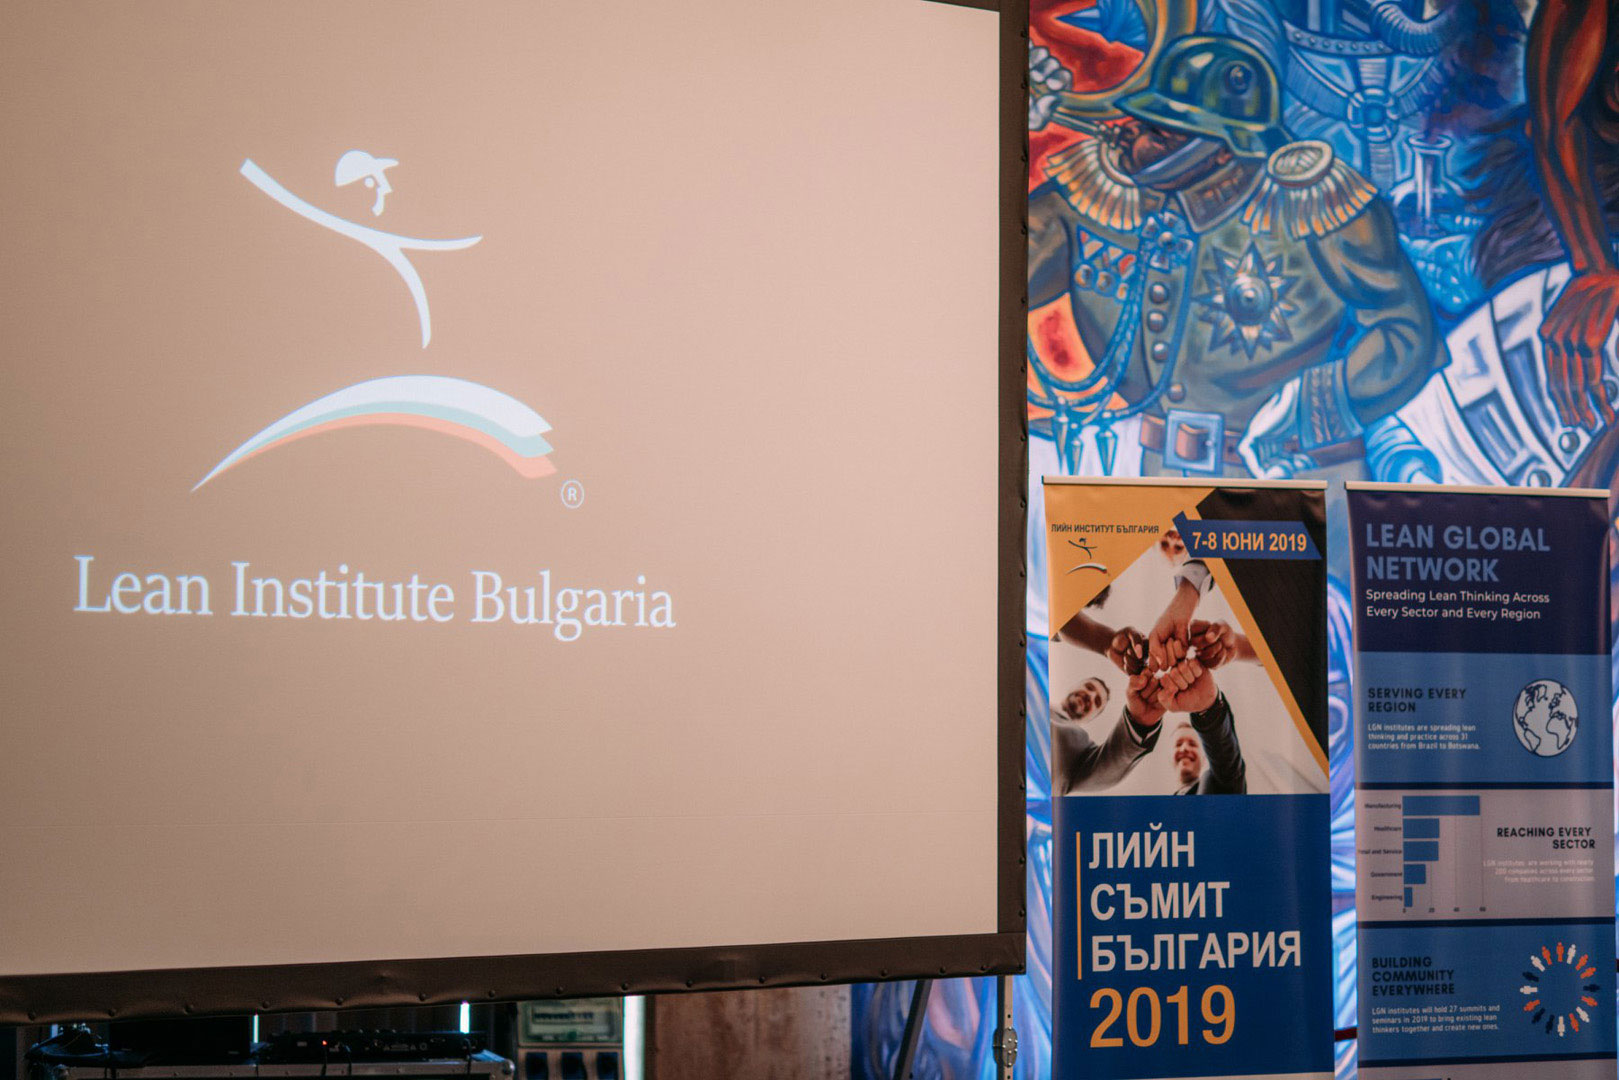 Lean Summit Bulgaria 2019 image 1